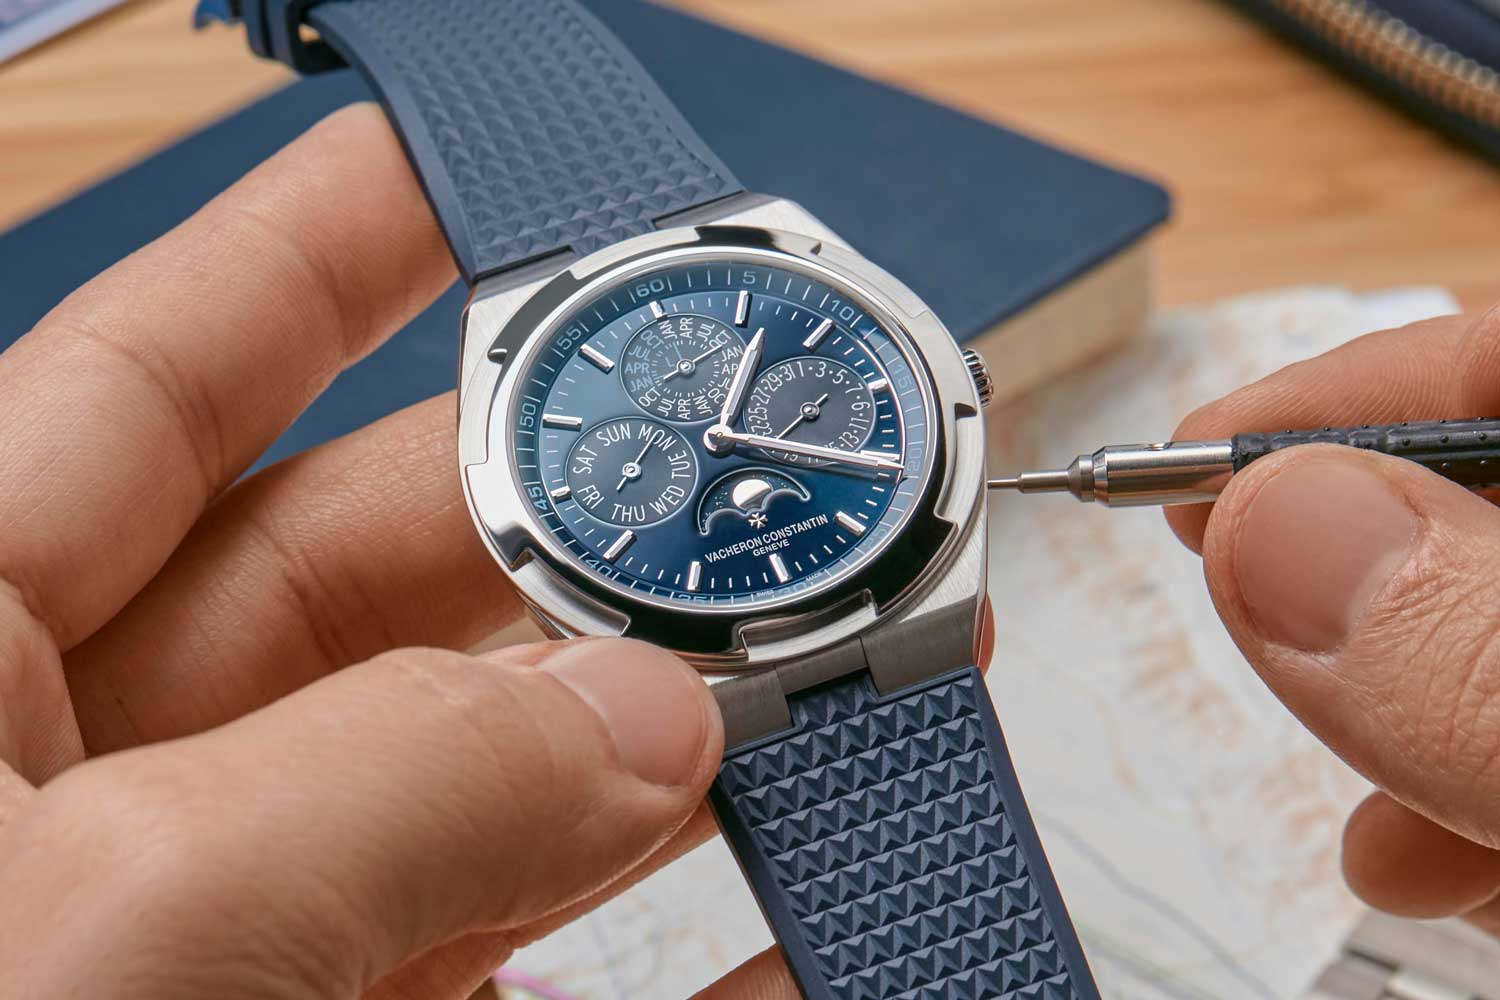 The Overseas watches offer a quick strap change system